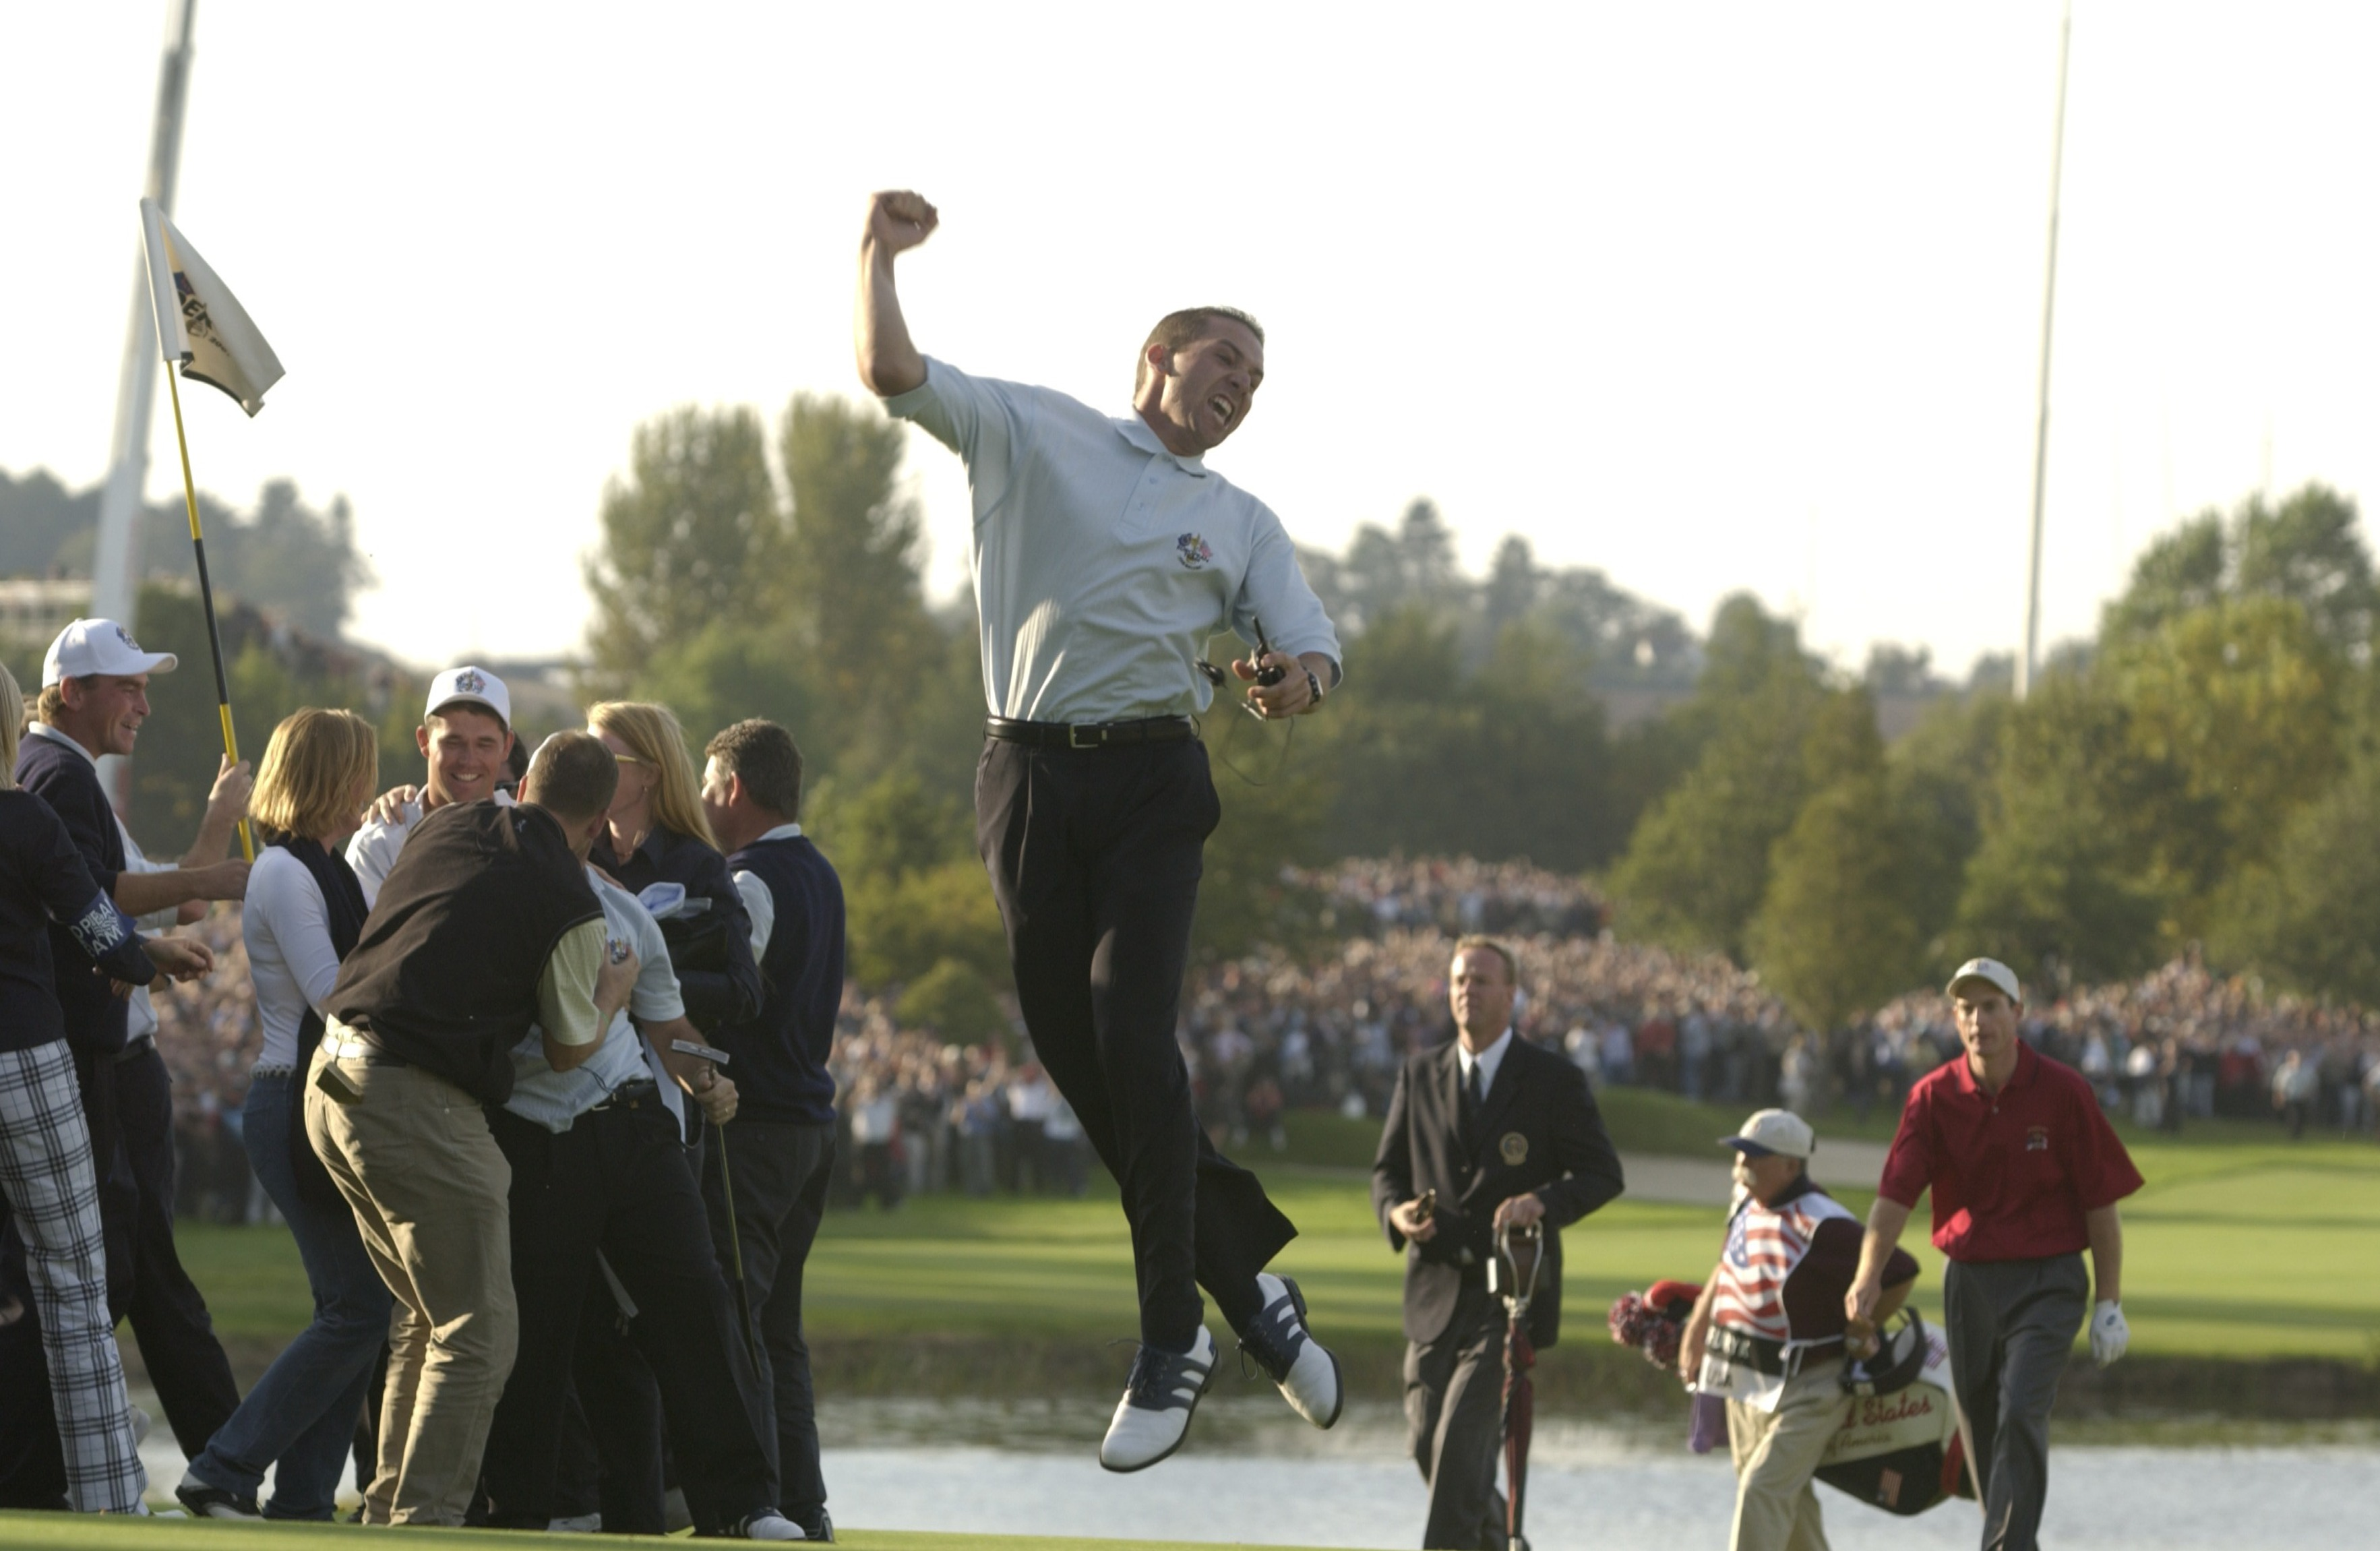 2002 Ryder Cup                           The Belfry                           Sutton Coldfield, England                           Paired with Lee Westwood, Garcia won his Friday four-ball and foursomes matches, and he won again with Westwood in Saturday morning's foursomes to earn a third point for Europe. The pair lost to Woods and Davis Love III that afternoon, and Garcia lost his singles match Sunday to David Toms. But when Europe won the Cup, no one celebrated more than Garcia.